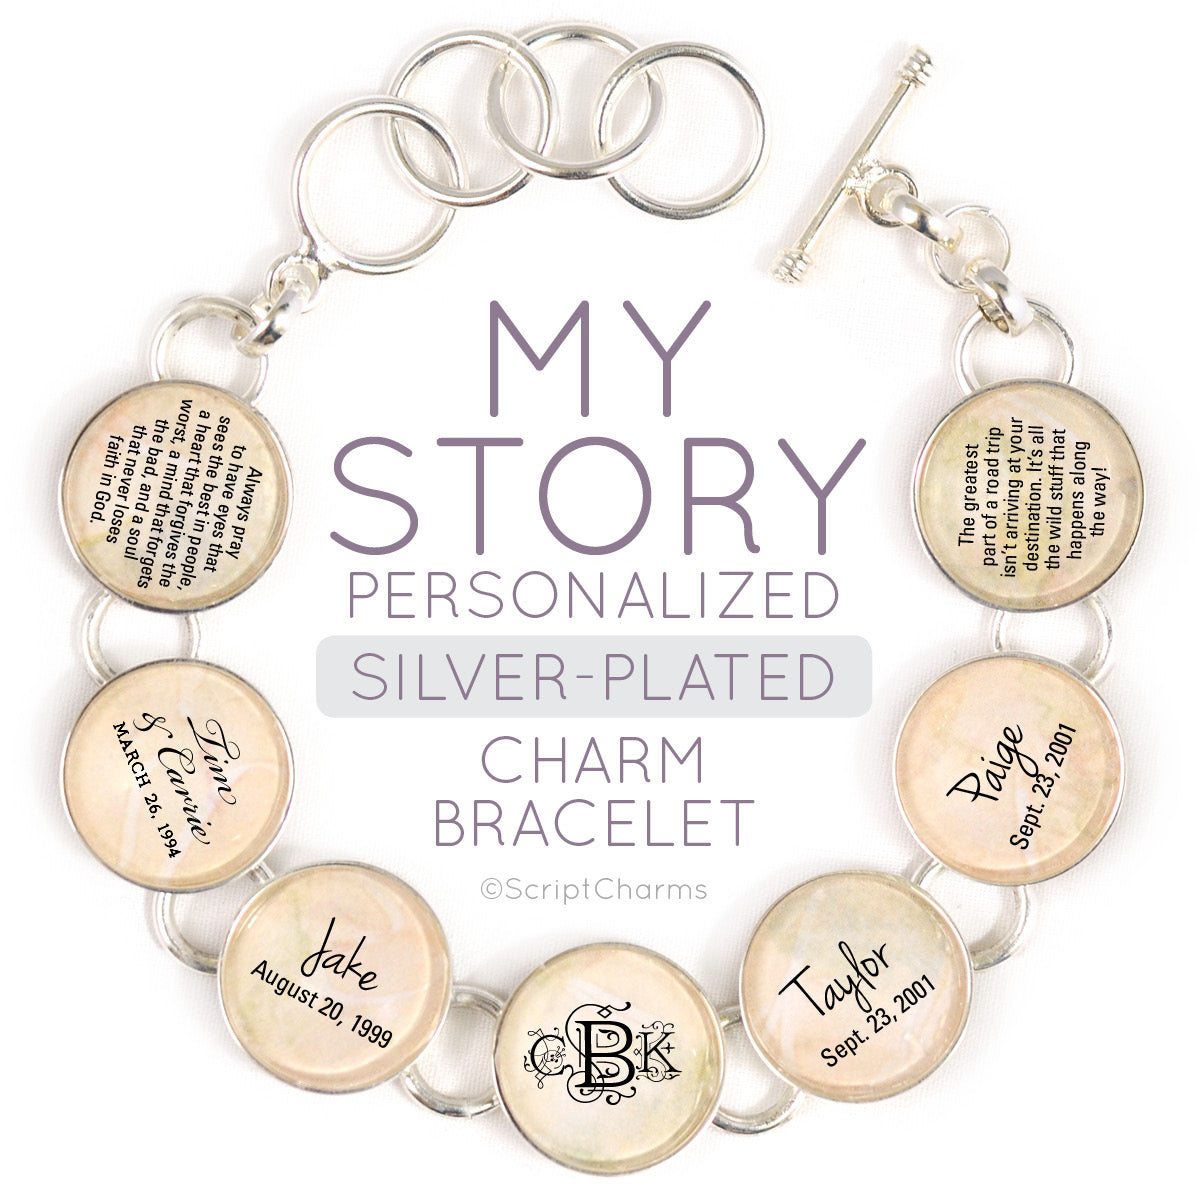 My Story Silver Plated Personalized Charm Bracelet